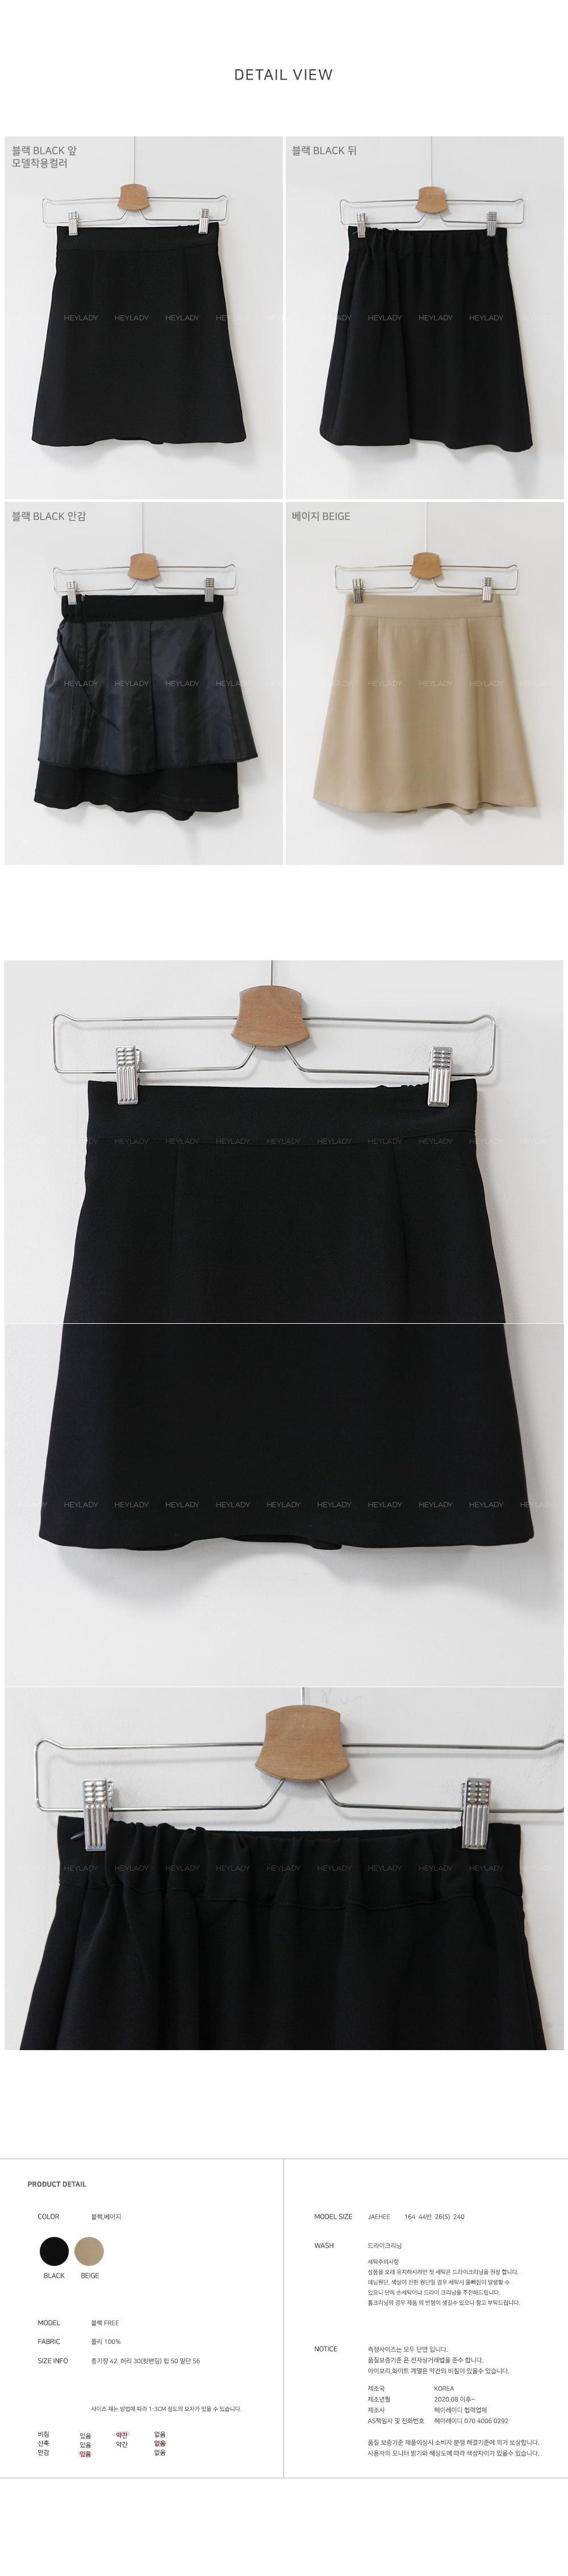 Gione mini skirt